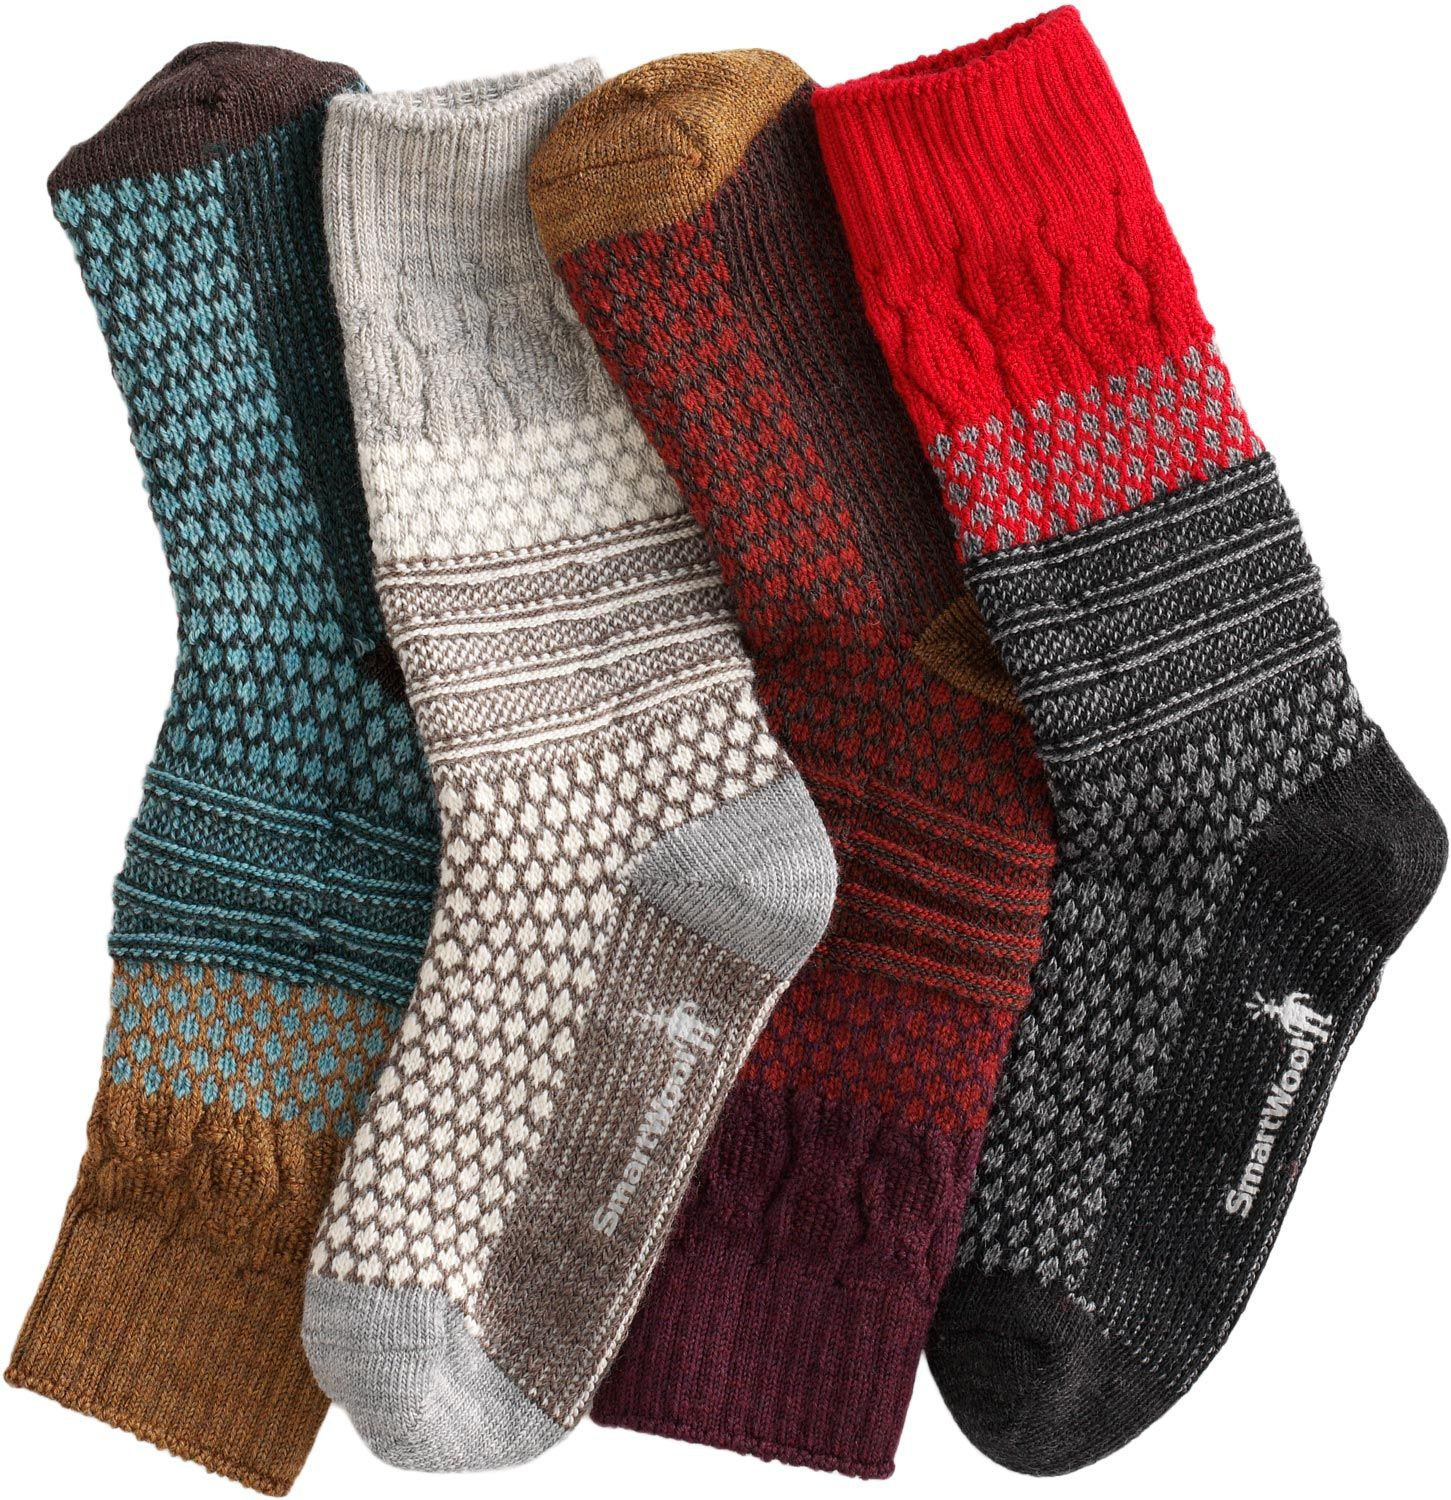 Merino wool - Yes, They Look Funky, Chunky And Thoroughly Fun. They're Made